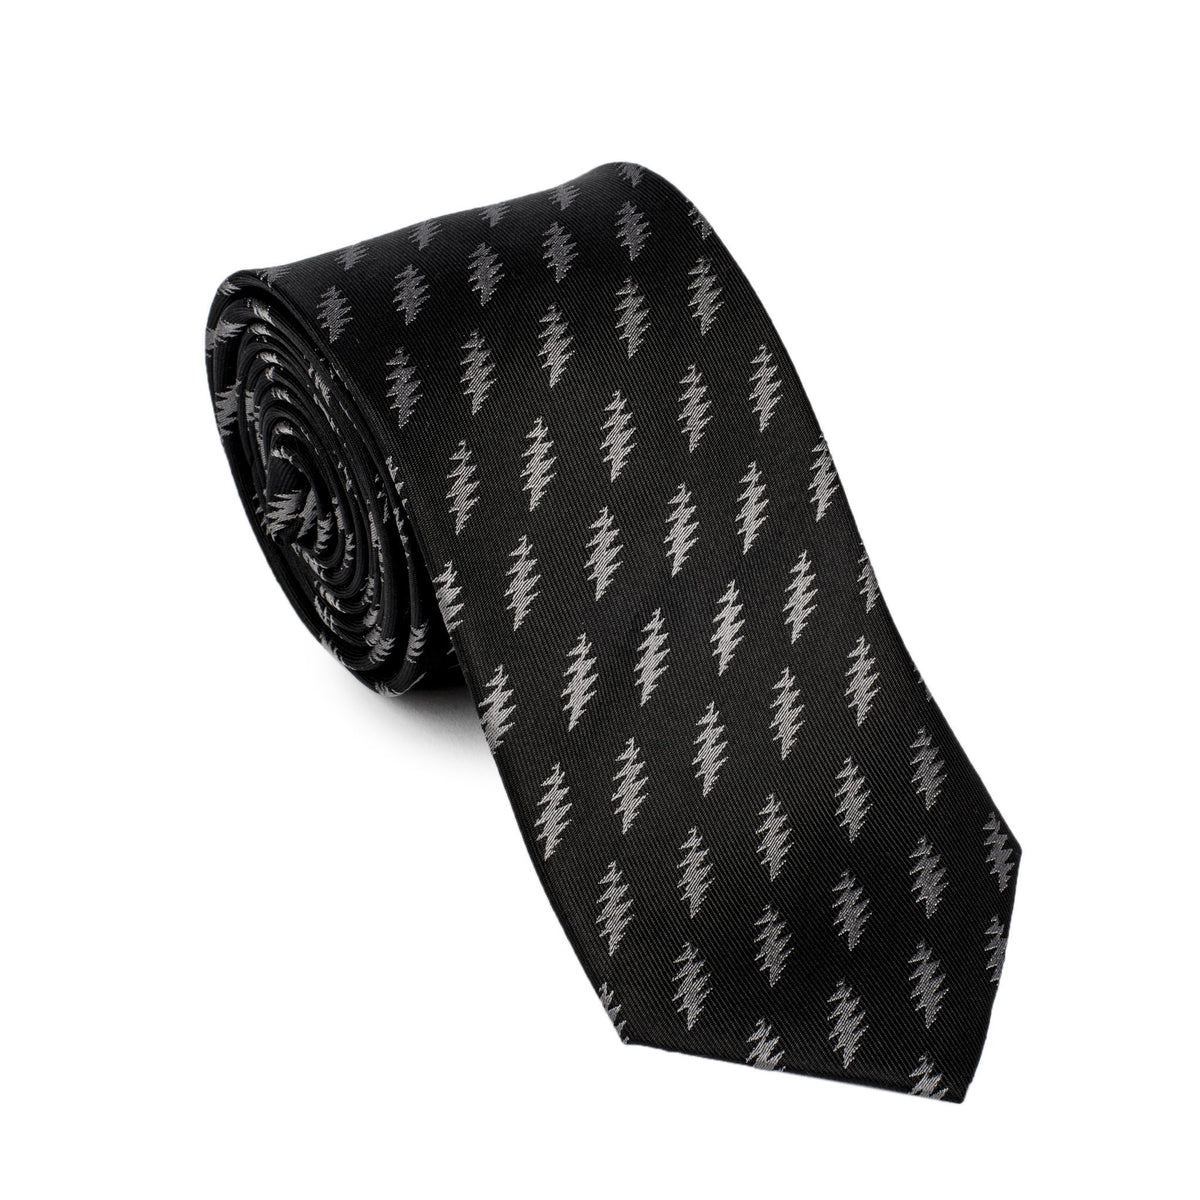 Grateful Dead Black 13 Point Bolt Tie (grey) - Section 119